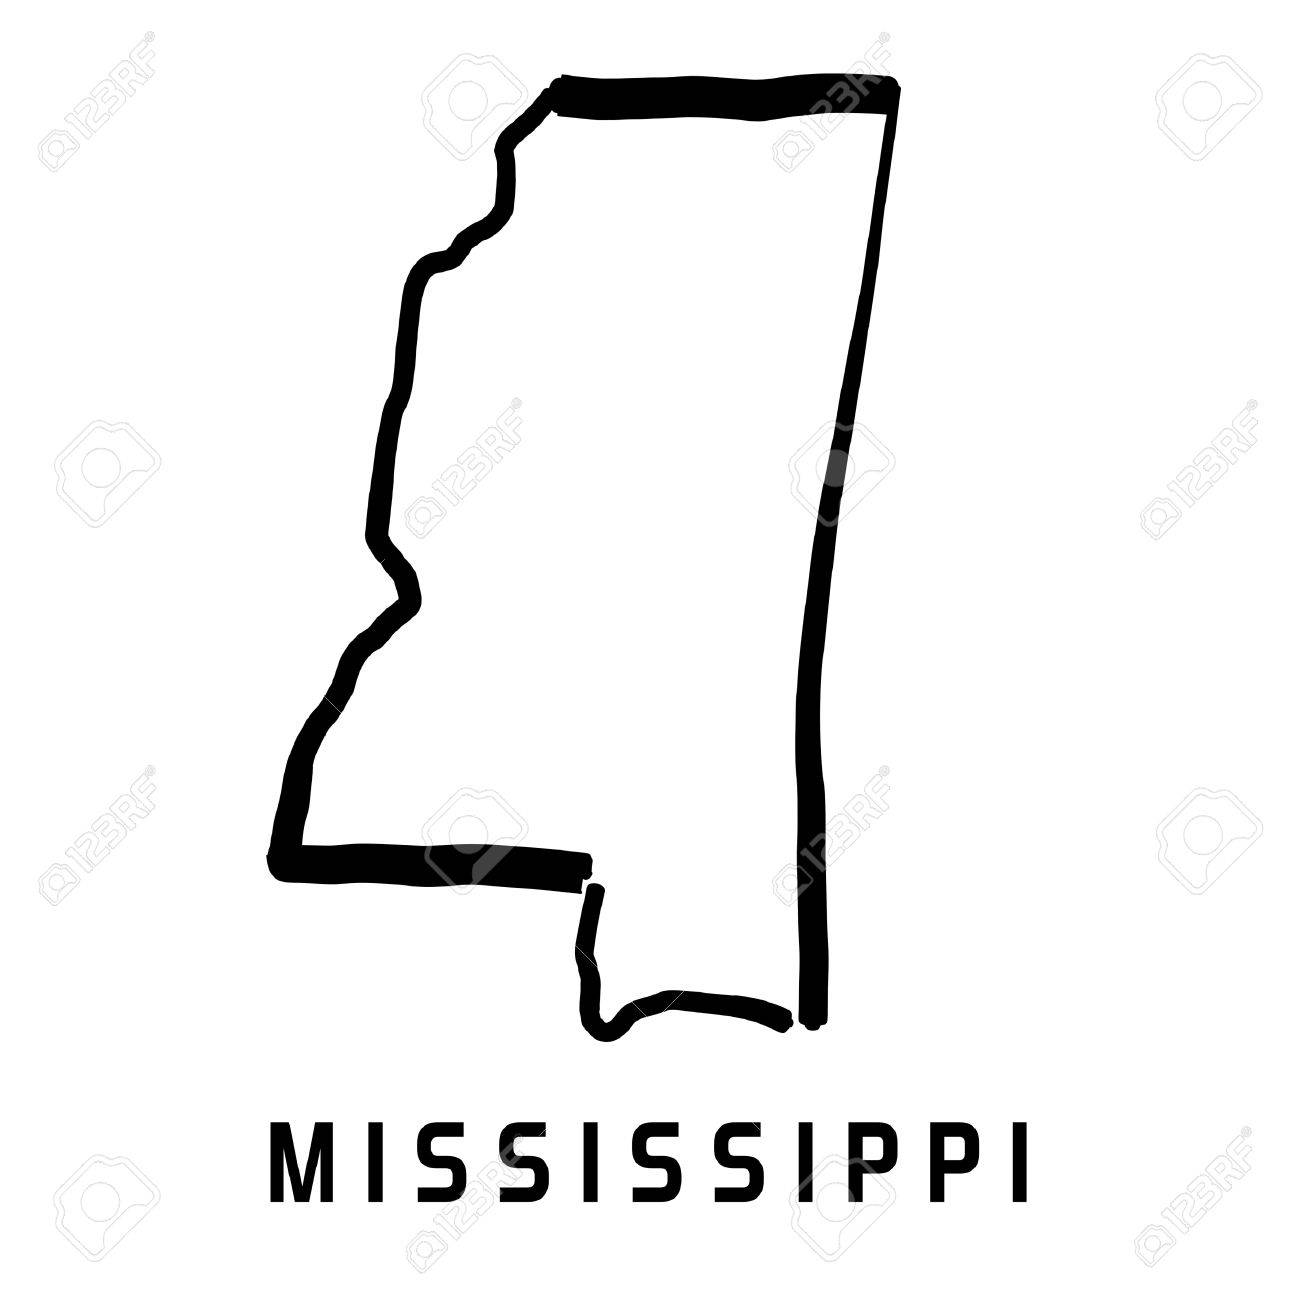 U S State Map Vector.Mississippi State Map Outline Smooth Simplified Us State Shape